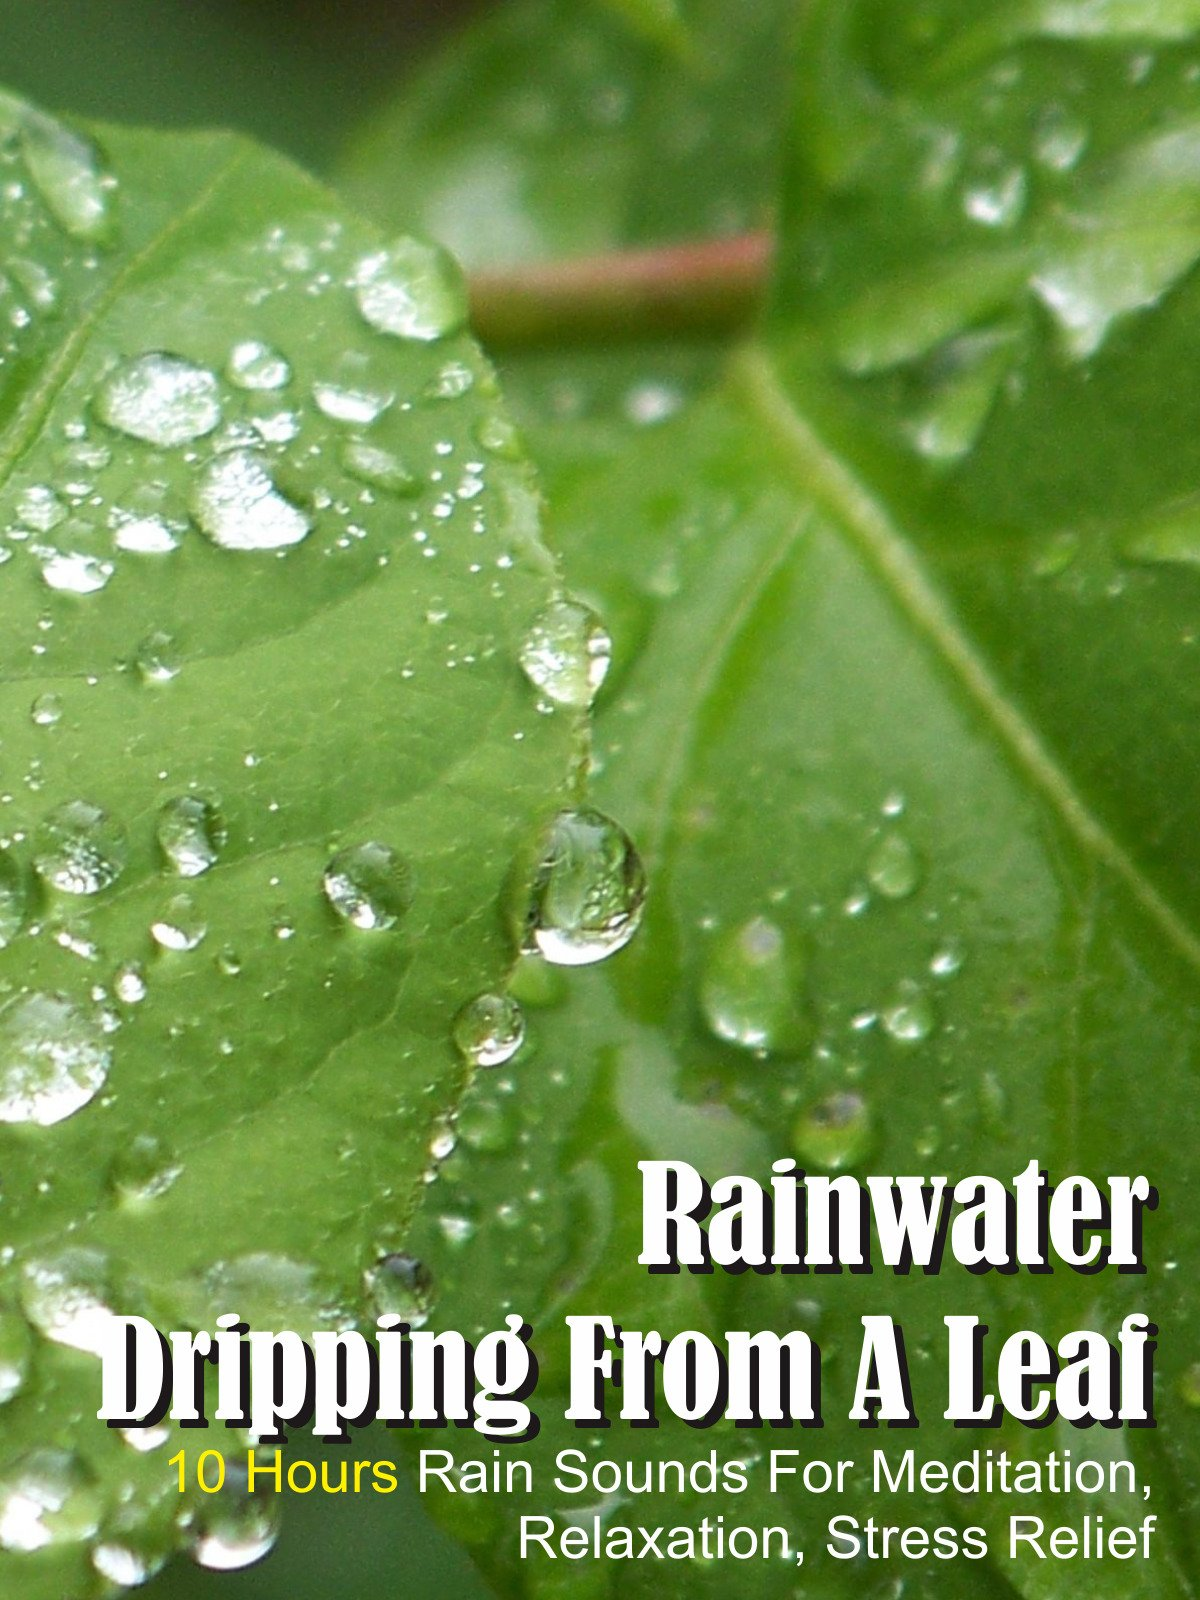 Rainwater Dripping from a Leaf